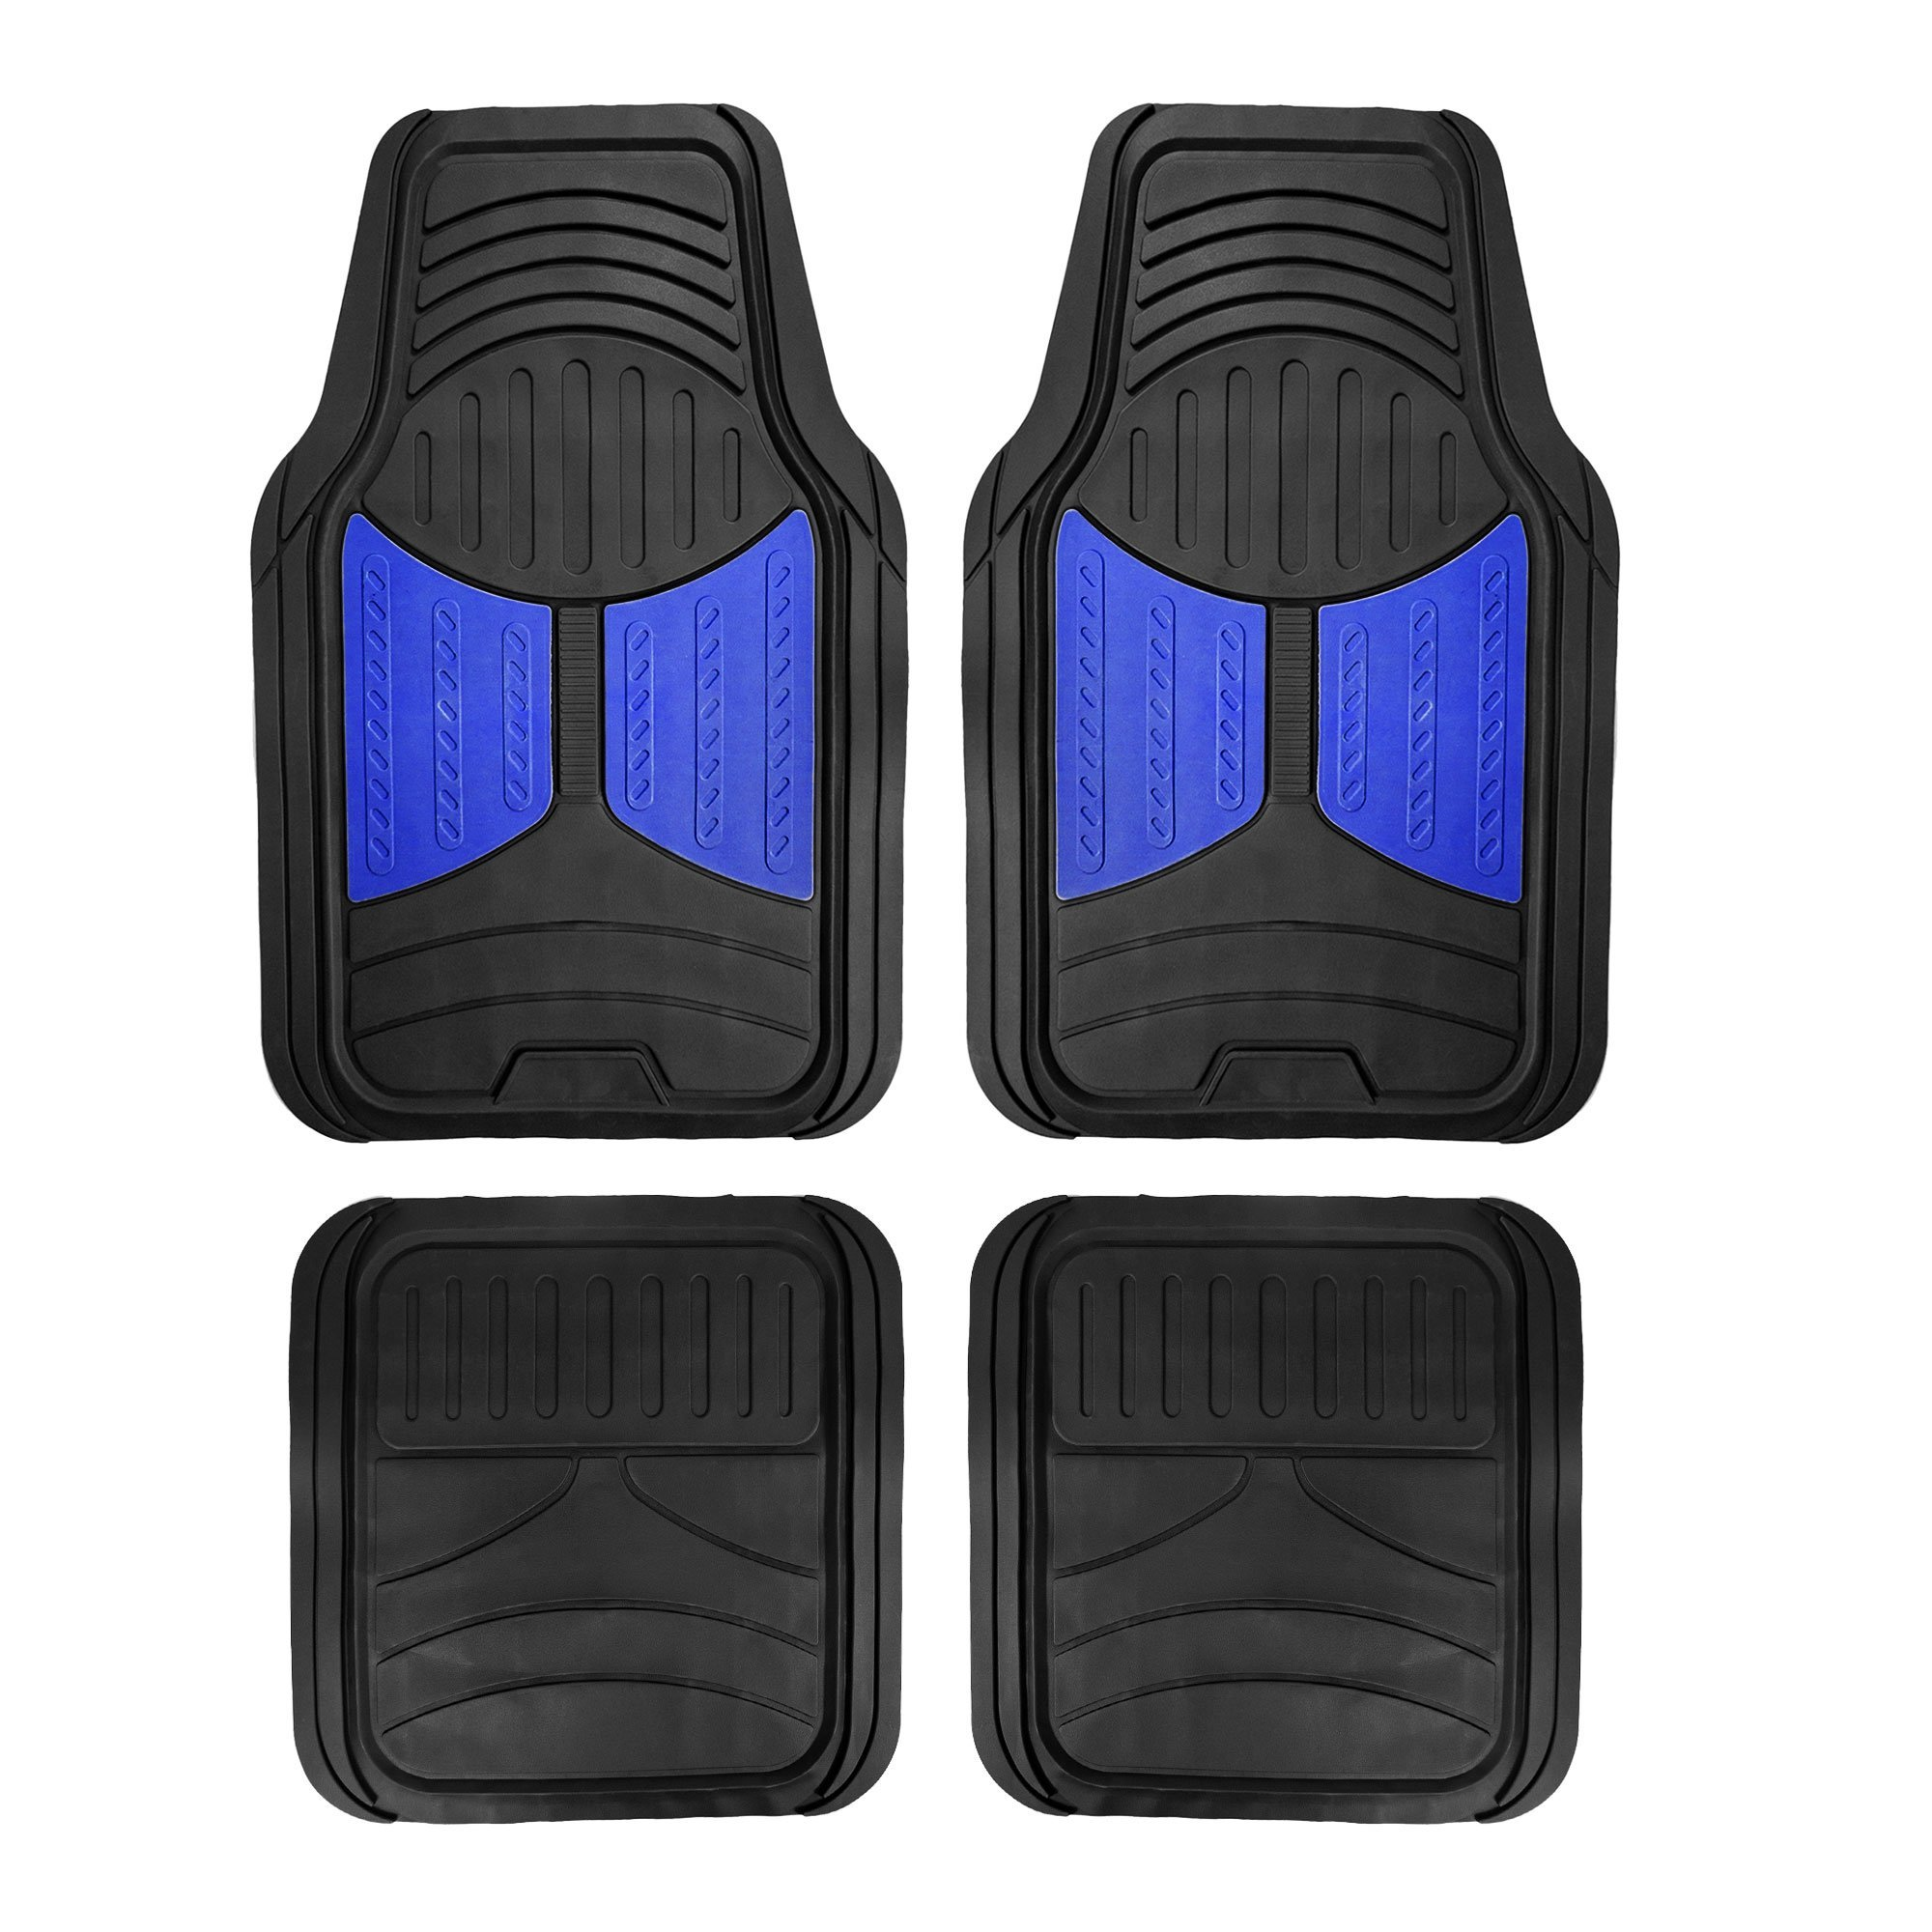 FH Group F11313BLUE Rubber Floor (Blue Full Set Trim to Fit Mats) by FH Group